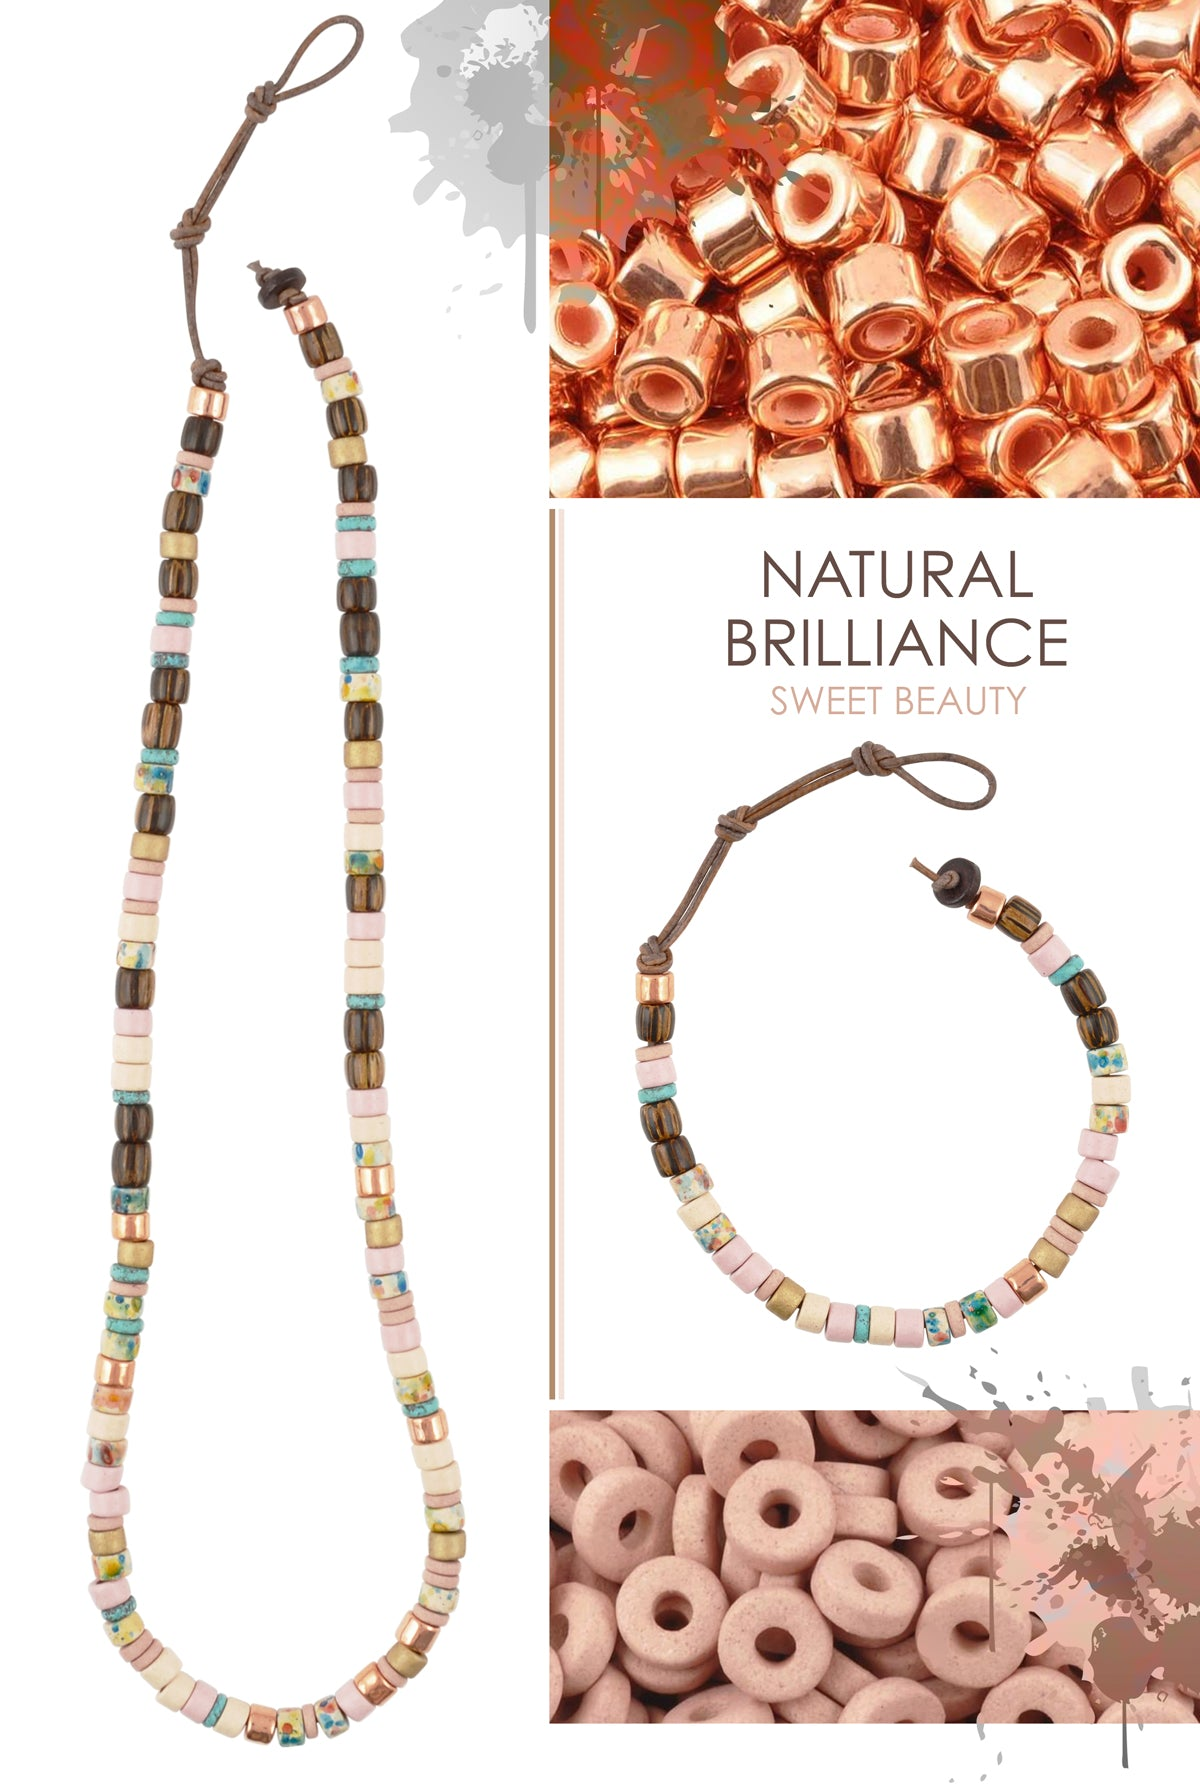 Natural Brilliance Sweet Beauty Necklace and Bracelet